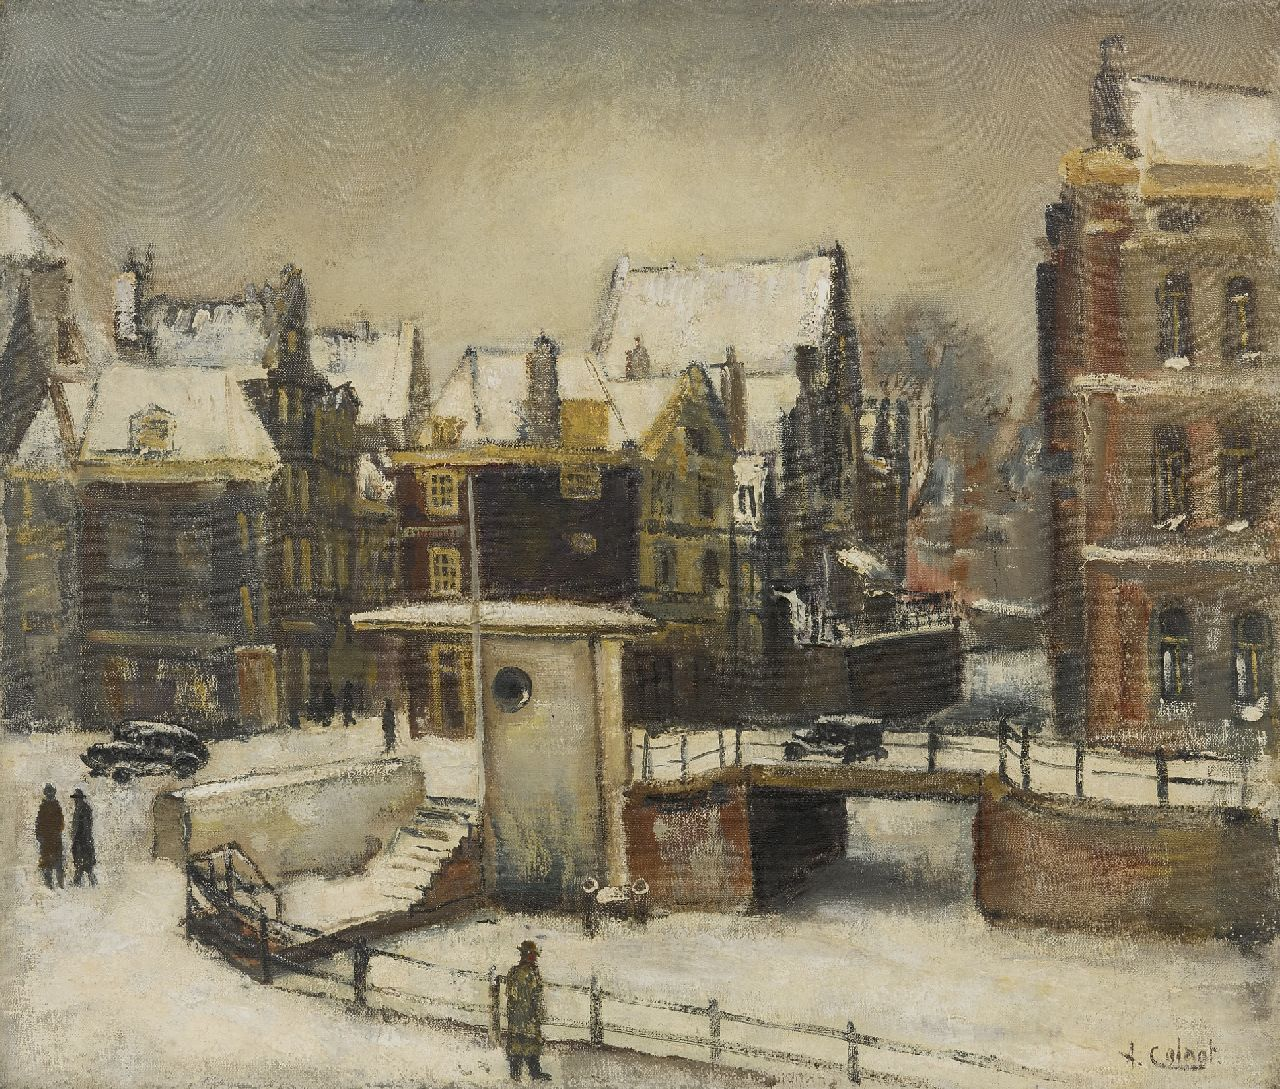 Colnot A.J.G.  | 'Arnout' Jacobus Gustaaf Colnot | Paintings offered for sale | The Rokin in Amsterdam seen from Arti, winter 1940-1941, oil on canvas 55.4 x 65.3 cm, signed l.r.